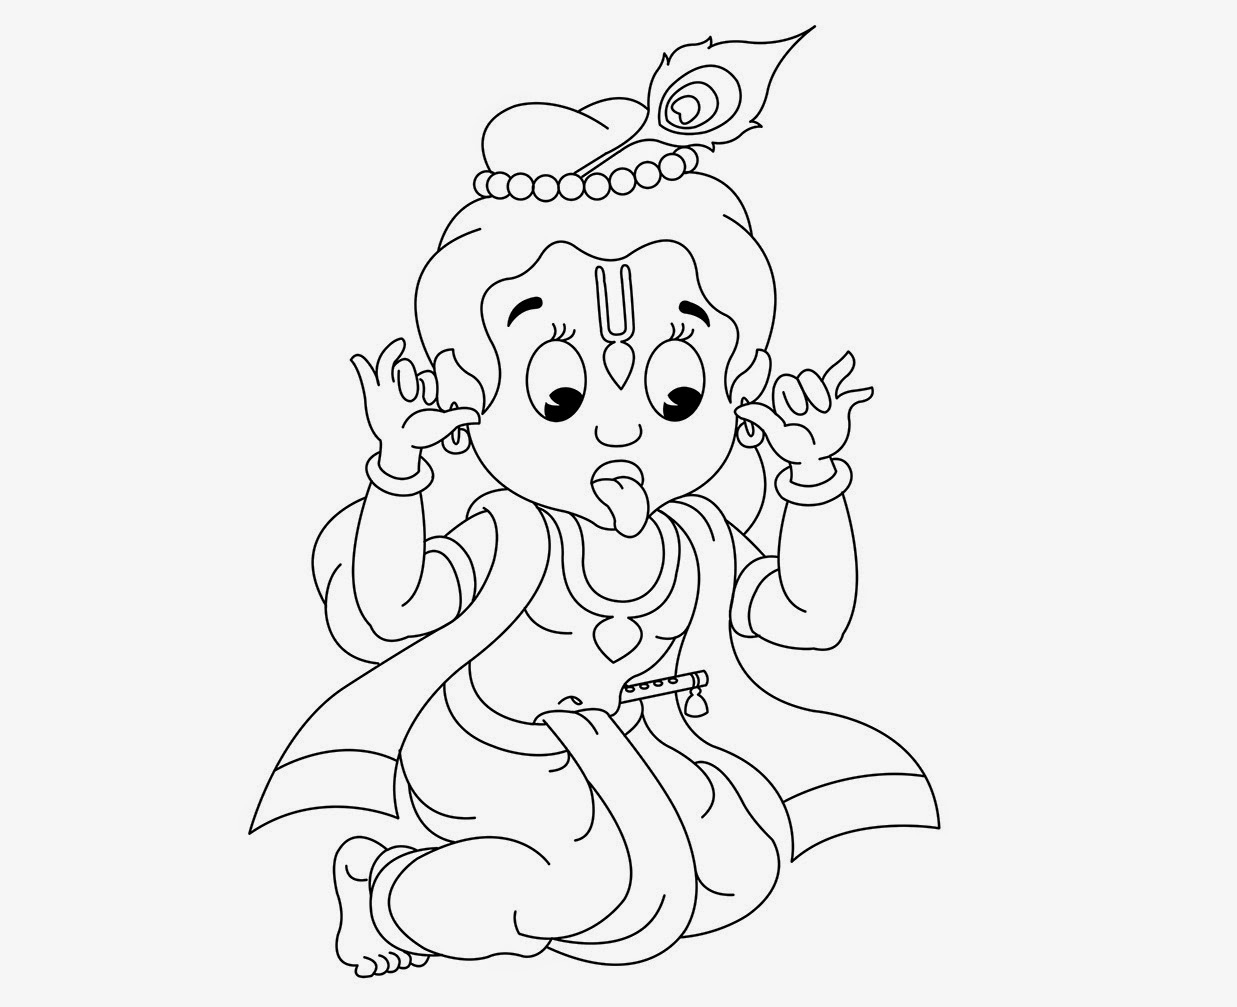 1237x1007 Krishna Little Drawing Colour Drawing Free Hd Wallpapers Little